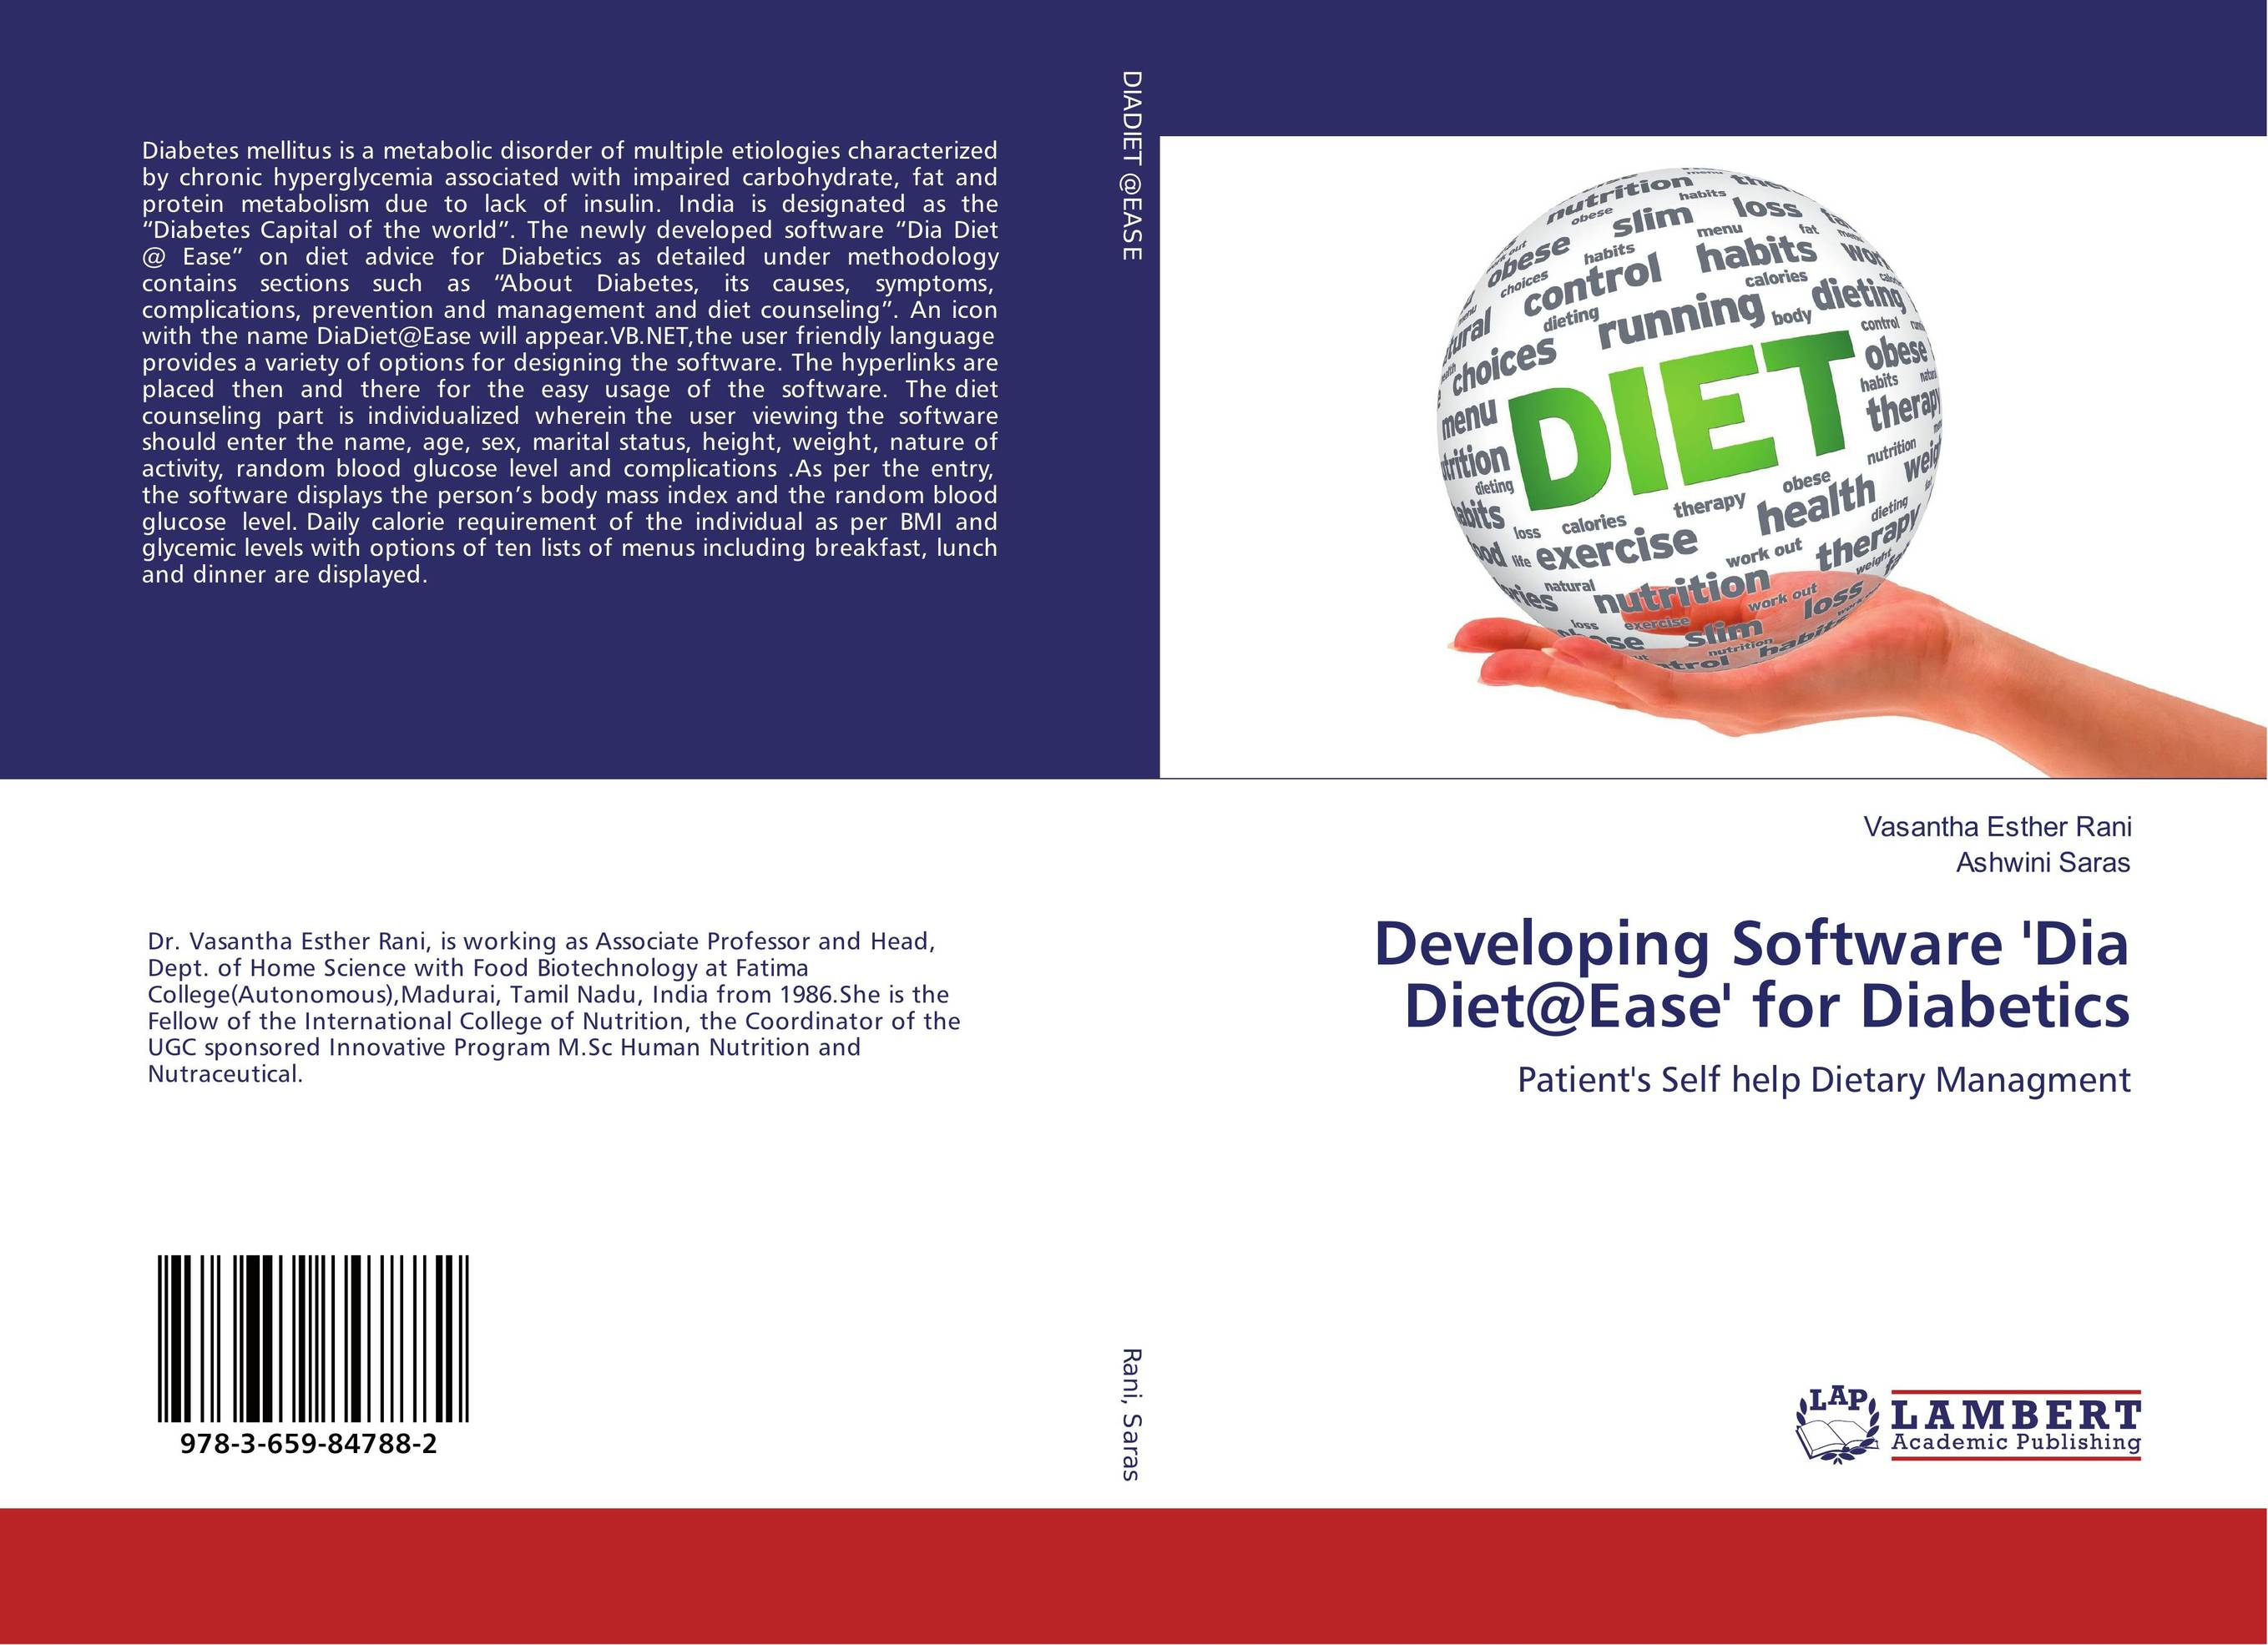 Developing Software 'Dia Diet@Ease' for Diabetics